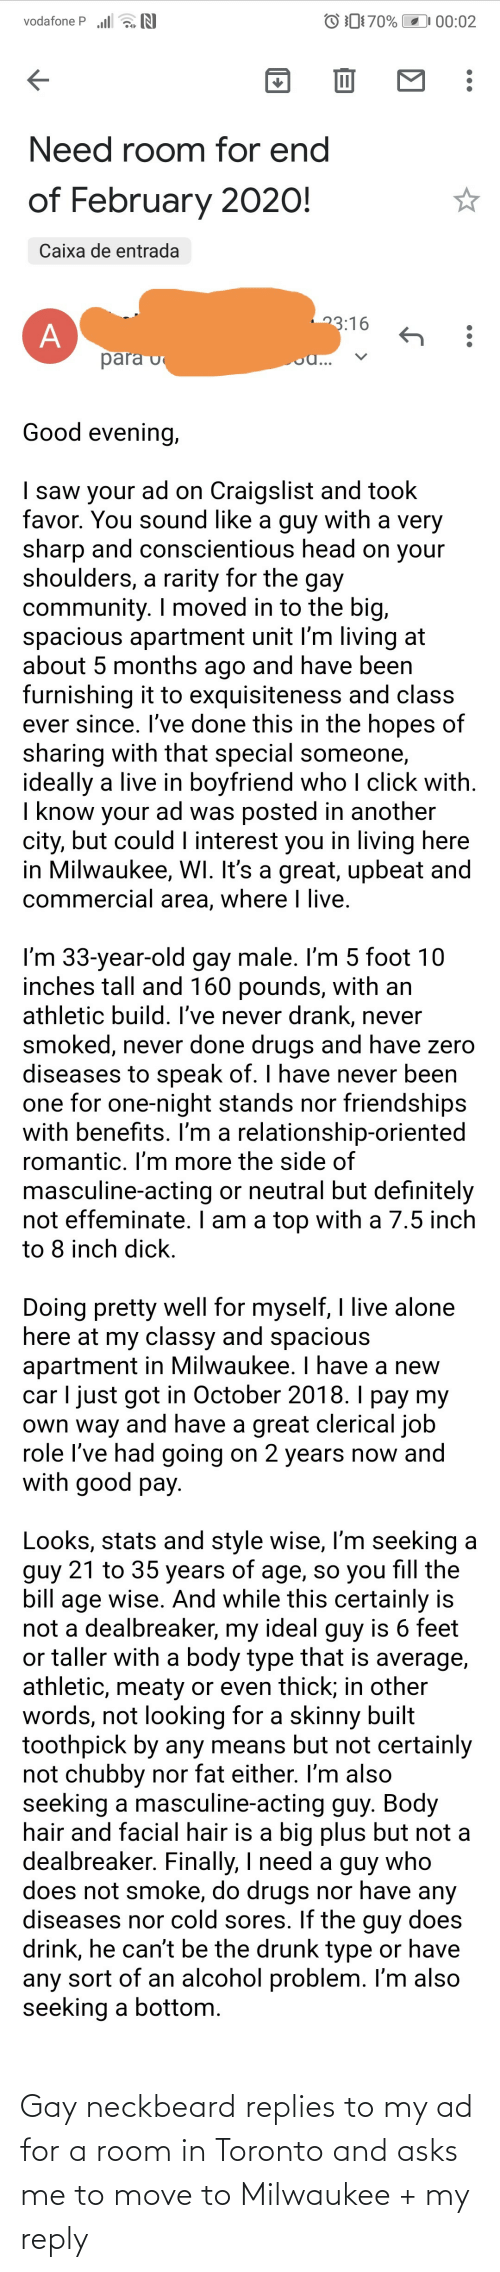 Move To: Gay neckbeard replies to my ad for a room in Toronto and asks me to move to Milwaukee + my reply